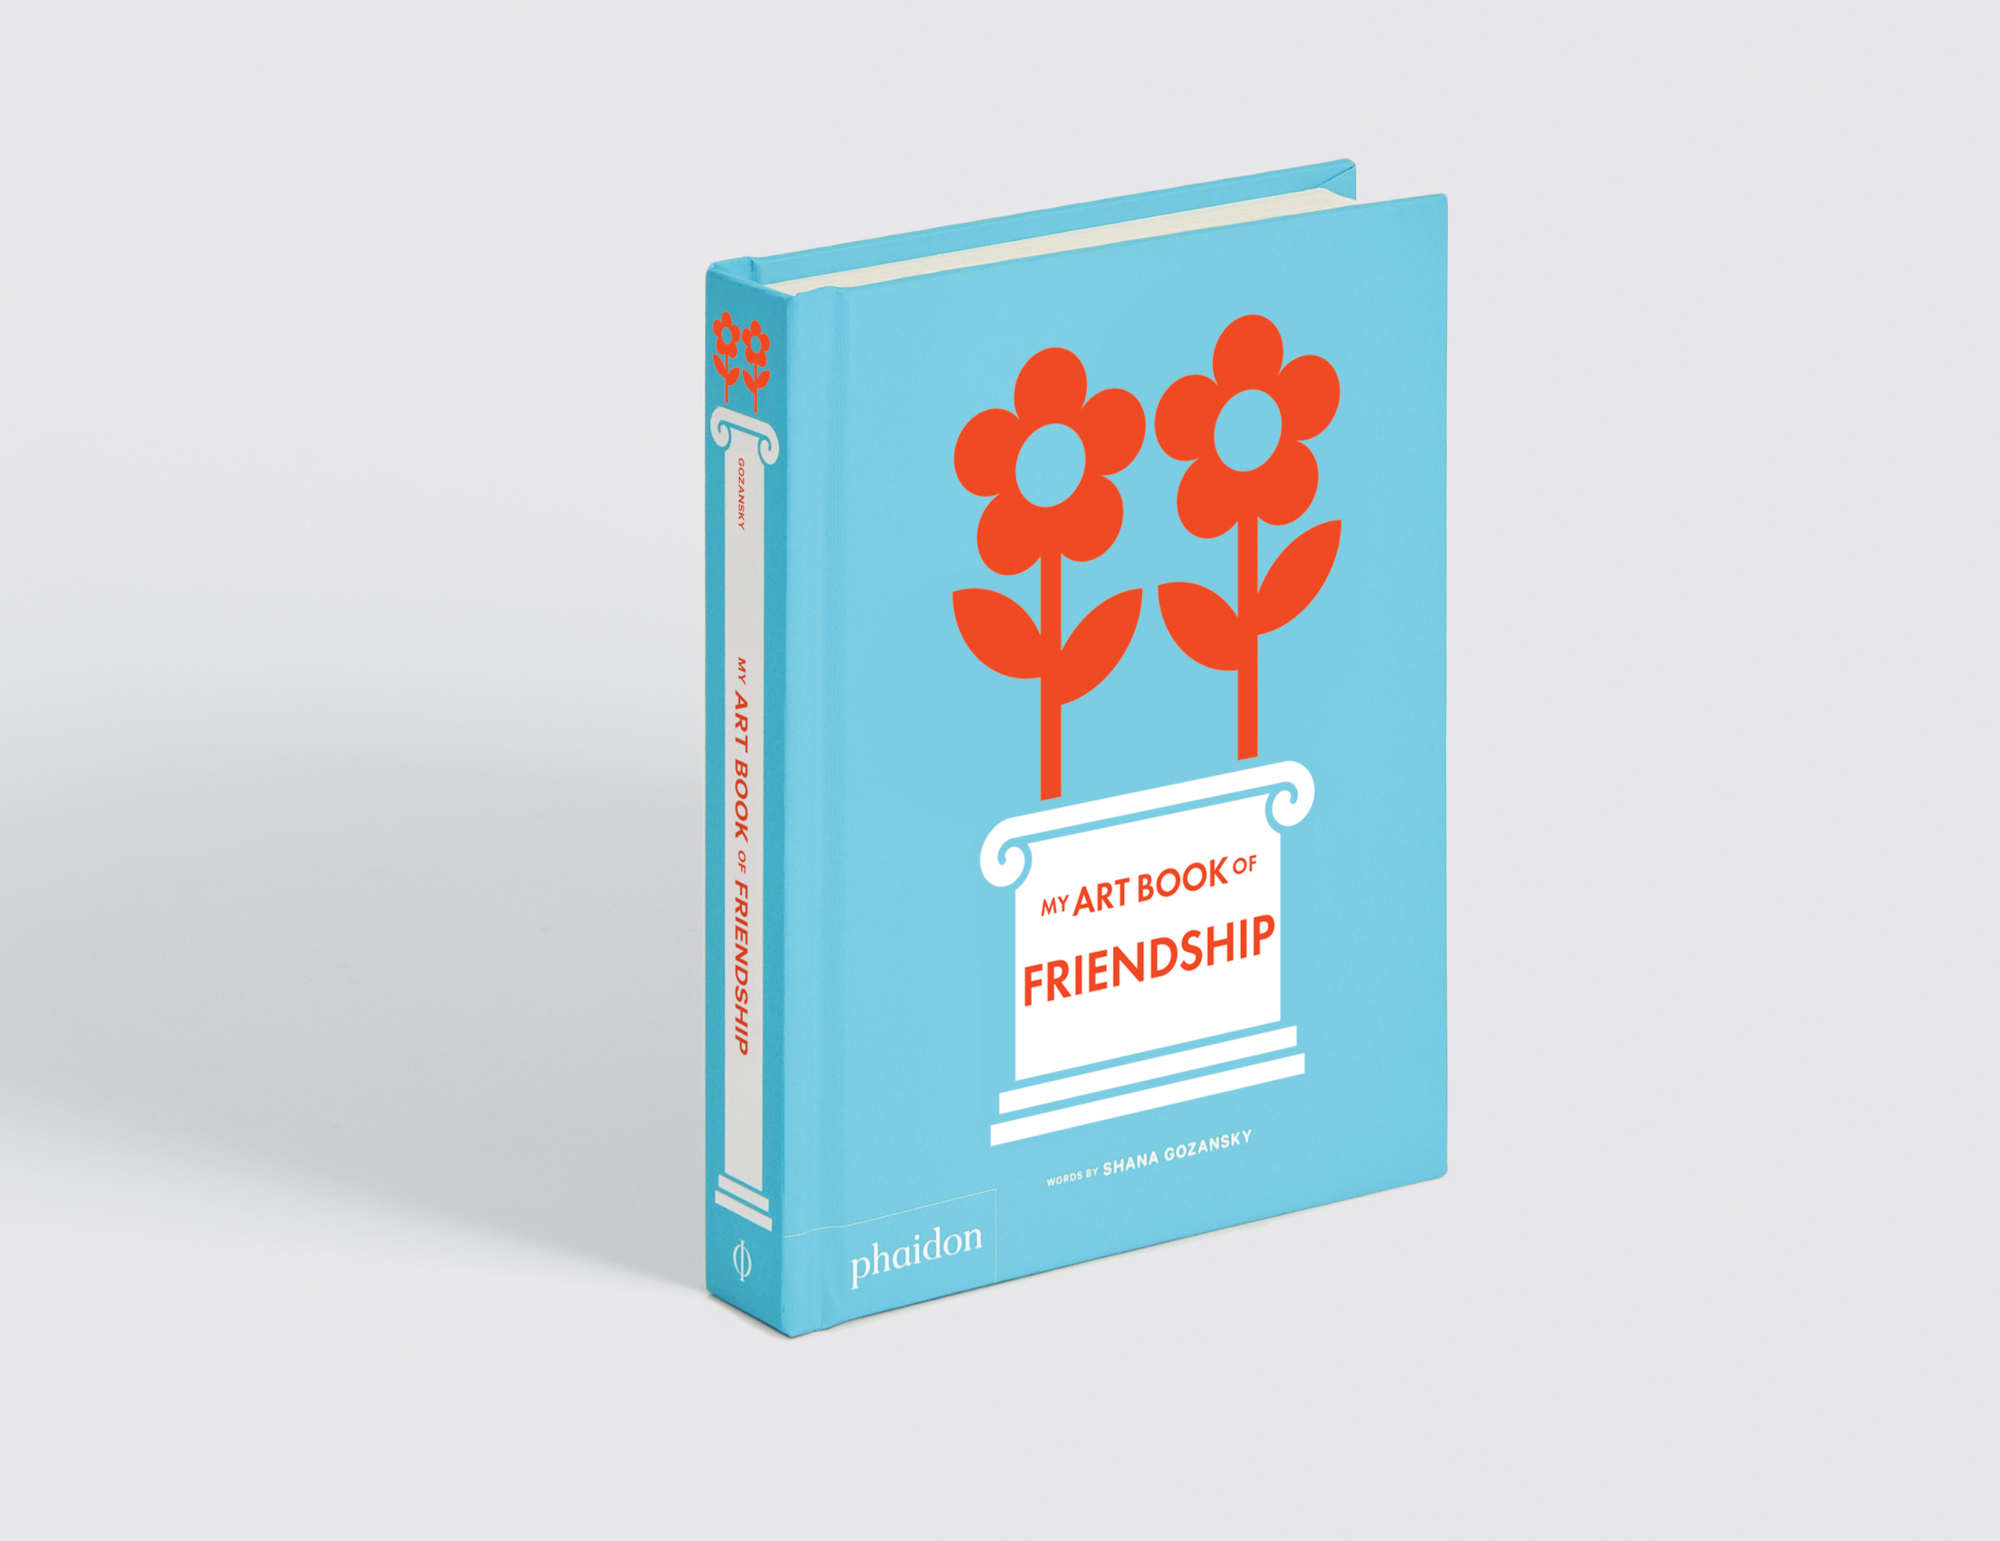 Share the love (and art) this World Book Day with My Art Book of Friendship